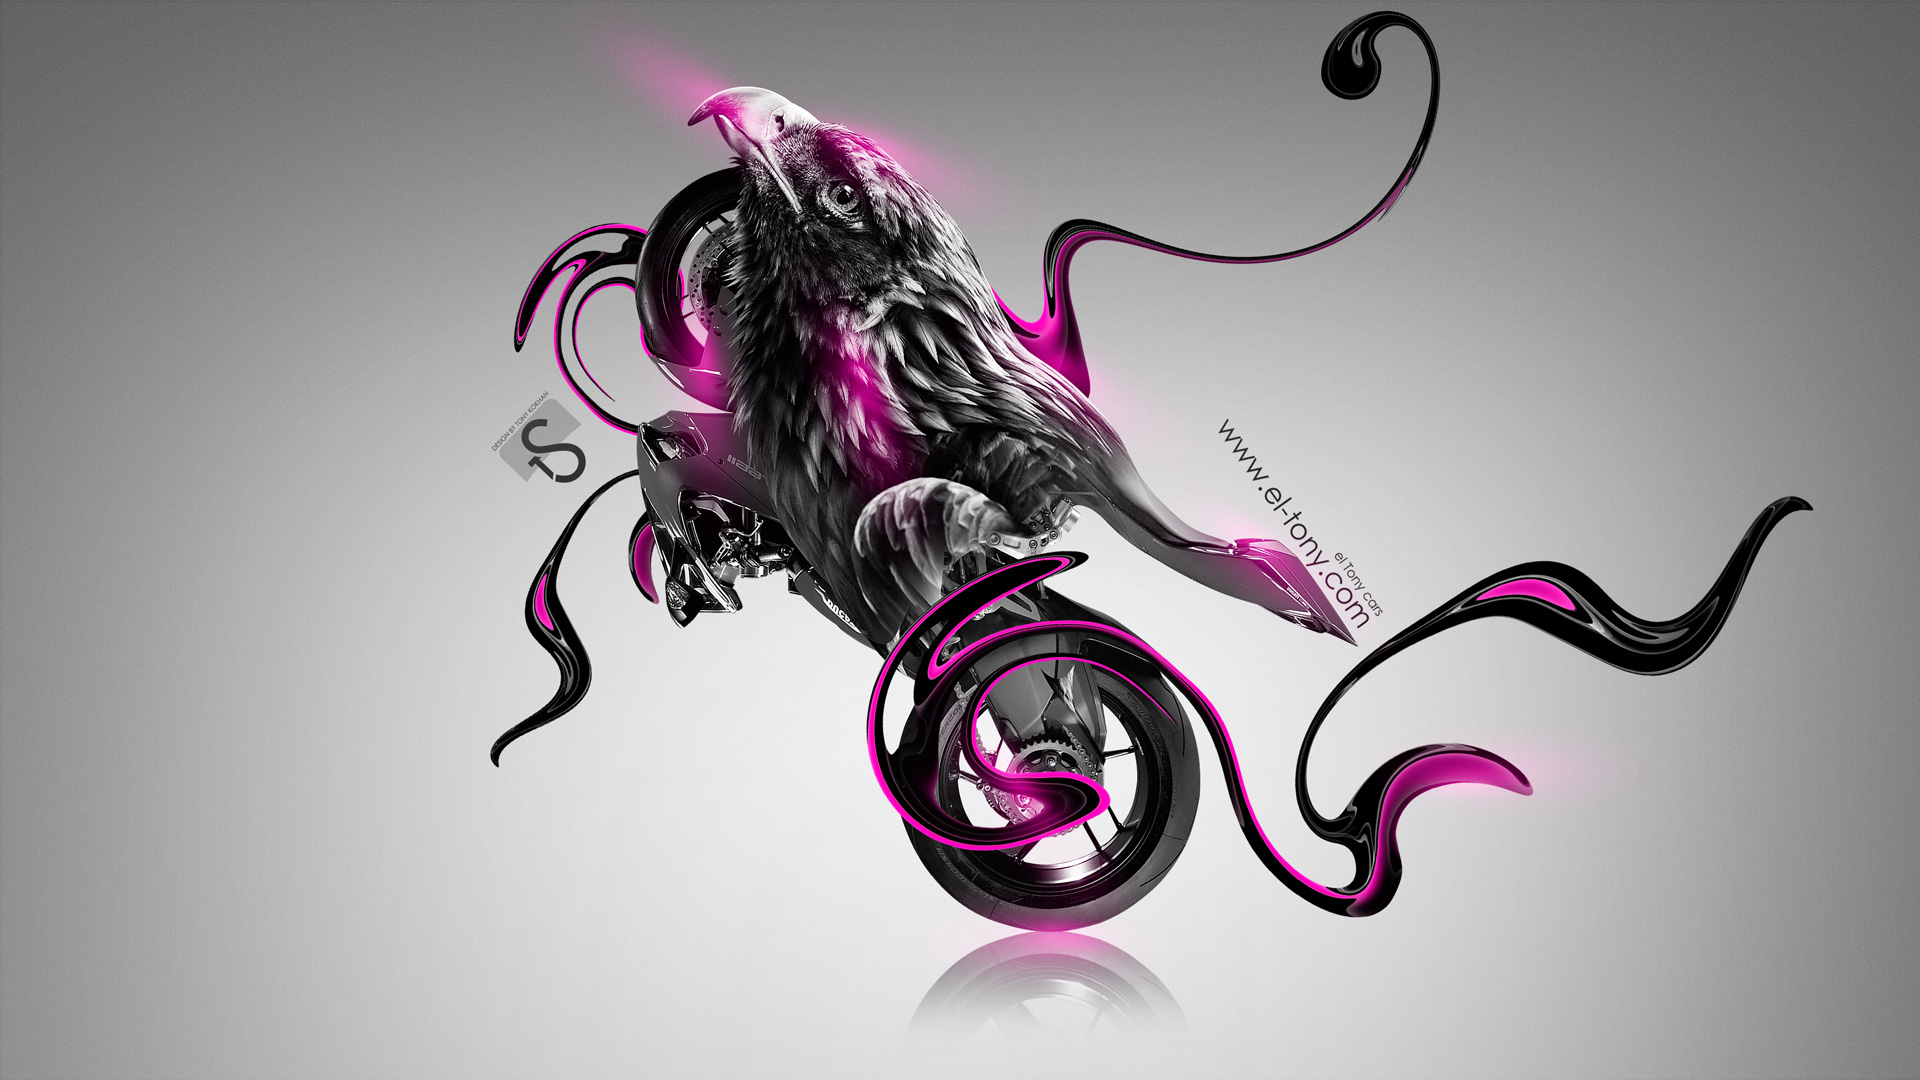 Exceptionnel Moto Ducati 1199 Fantasy Bird Bike 2014 Pink